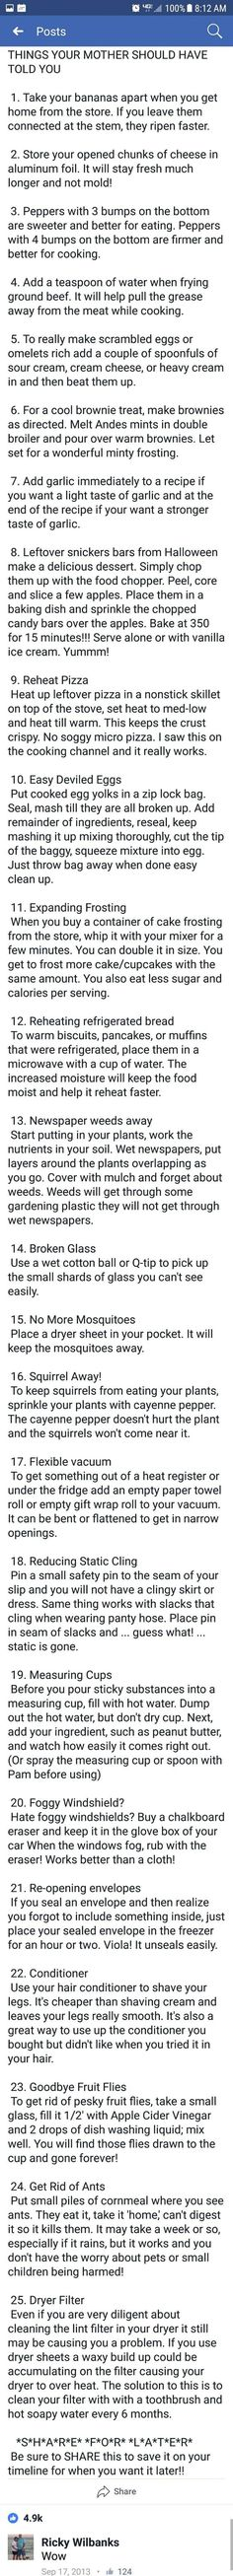 Life hacks for cooking and home. 1000 Lifehacks, Genius Ideas, Simple Life Hacks, Home Hacks, Things To Know, Cooking Tips, Food Tips, Beginner Cooking, Good To Know